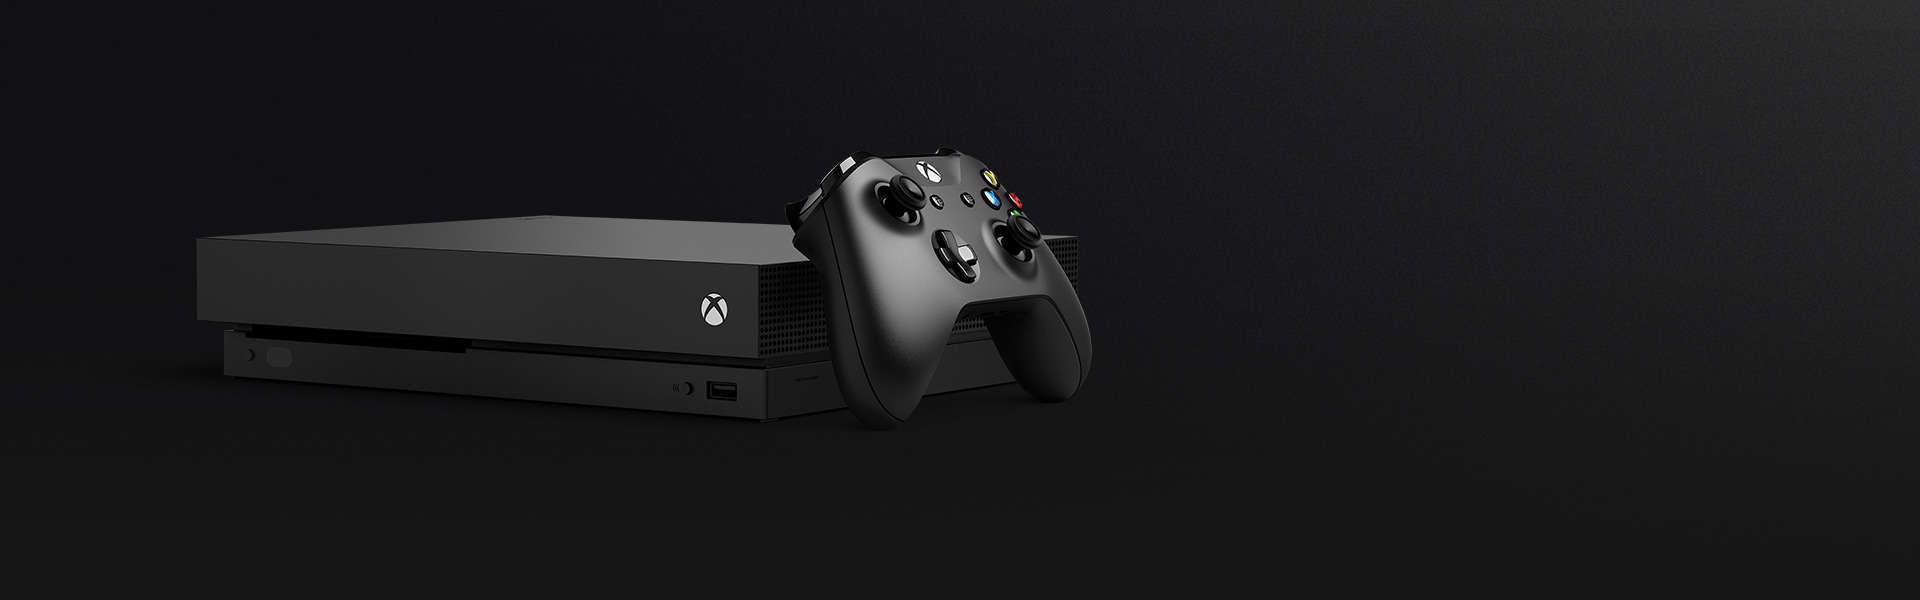 XBOX One X vs XBOX One S – Which Should I Choose?